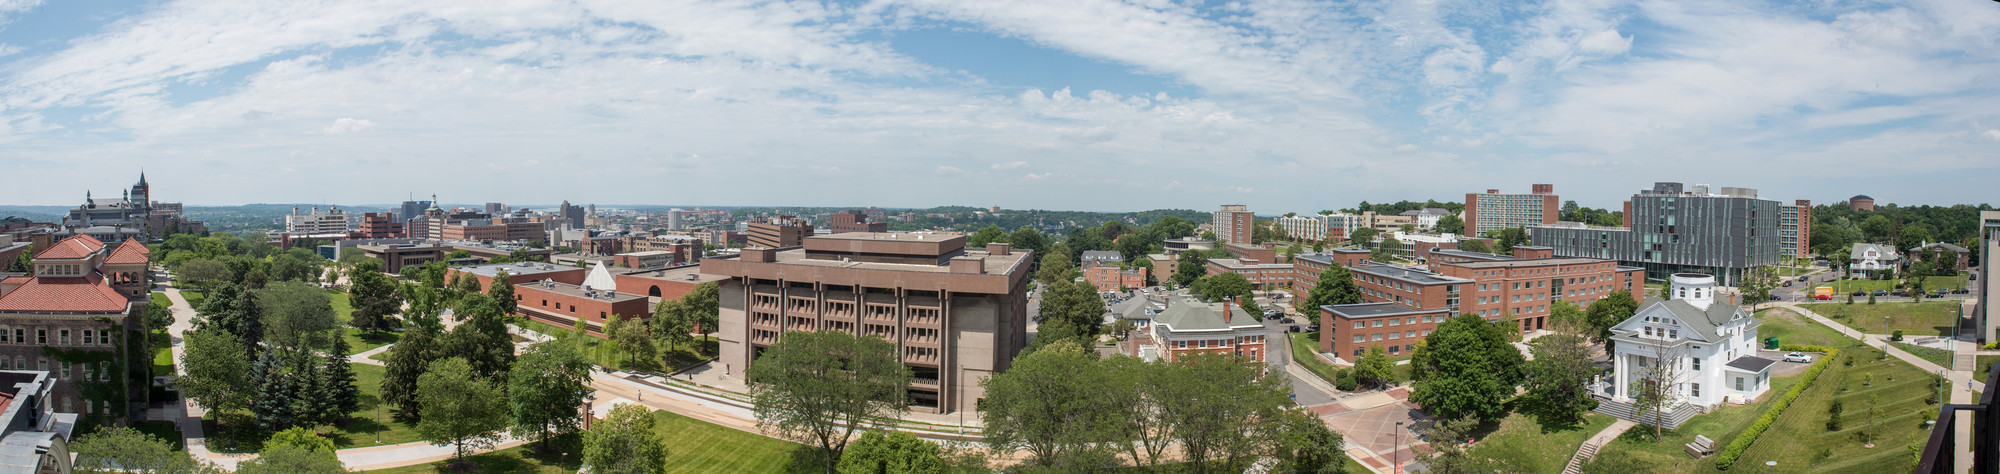 Panorama From Lyman Tower HL Hall Of Languages Smith Hall Newhouse Schine Promenade Einhorn Family Walk Bird Library Goldstein Faculty Center Watson Dorm Resedence Hall Ernie Davis Hall 2017